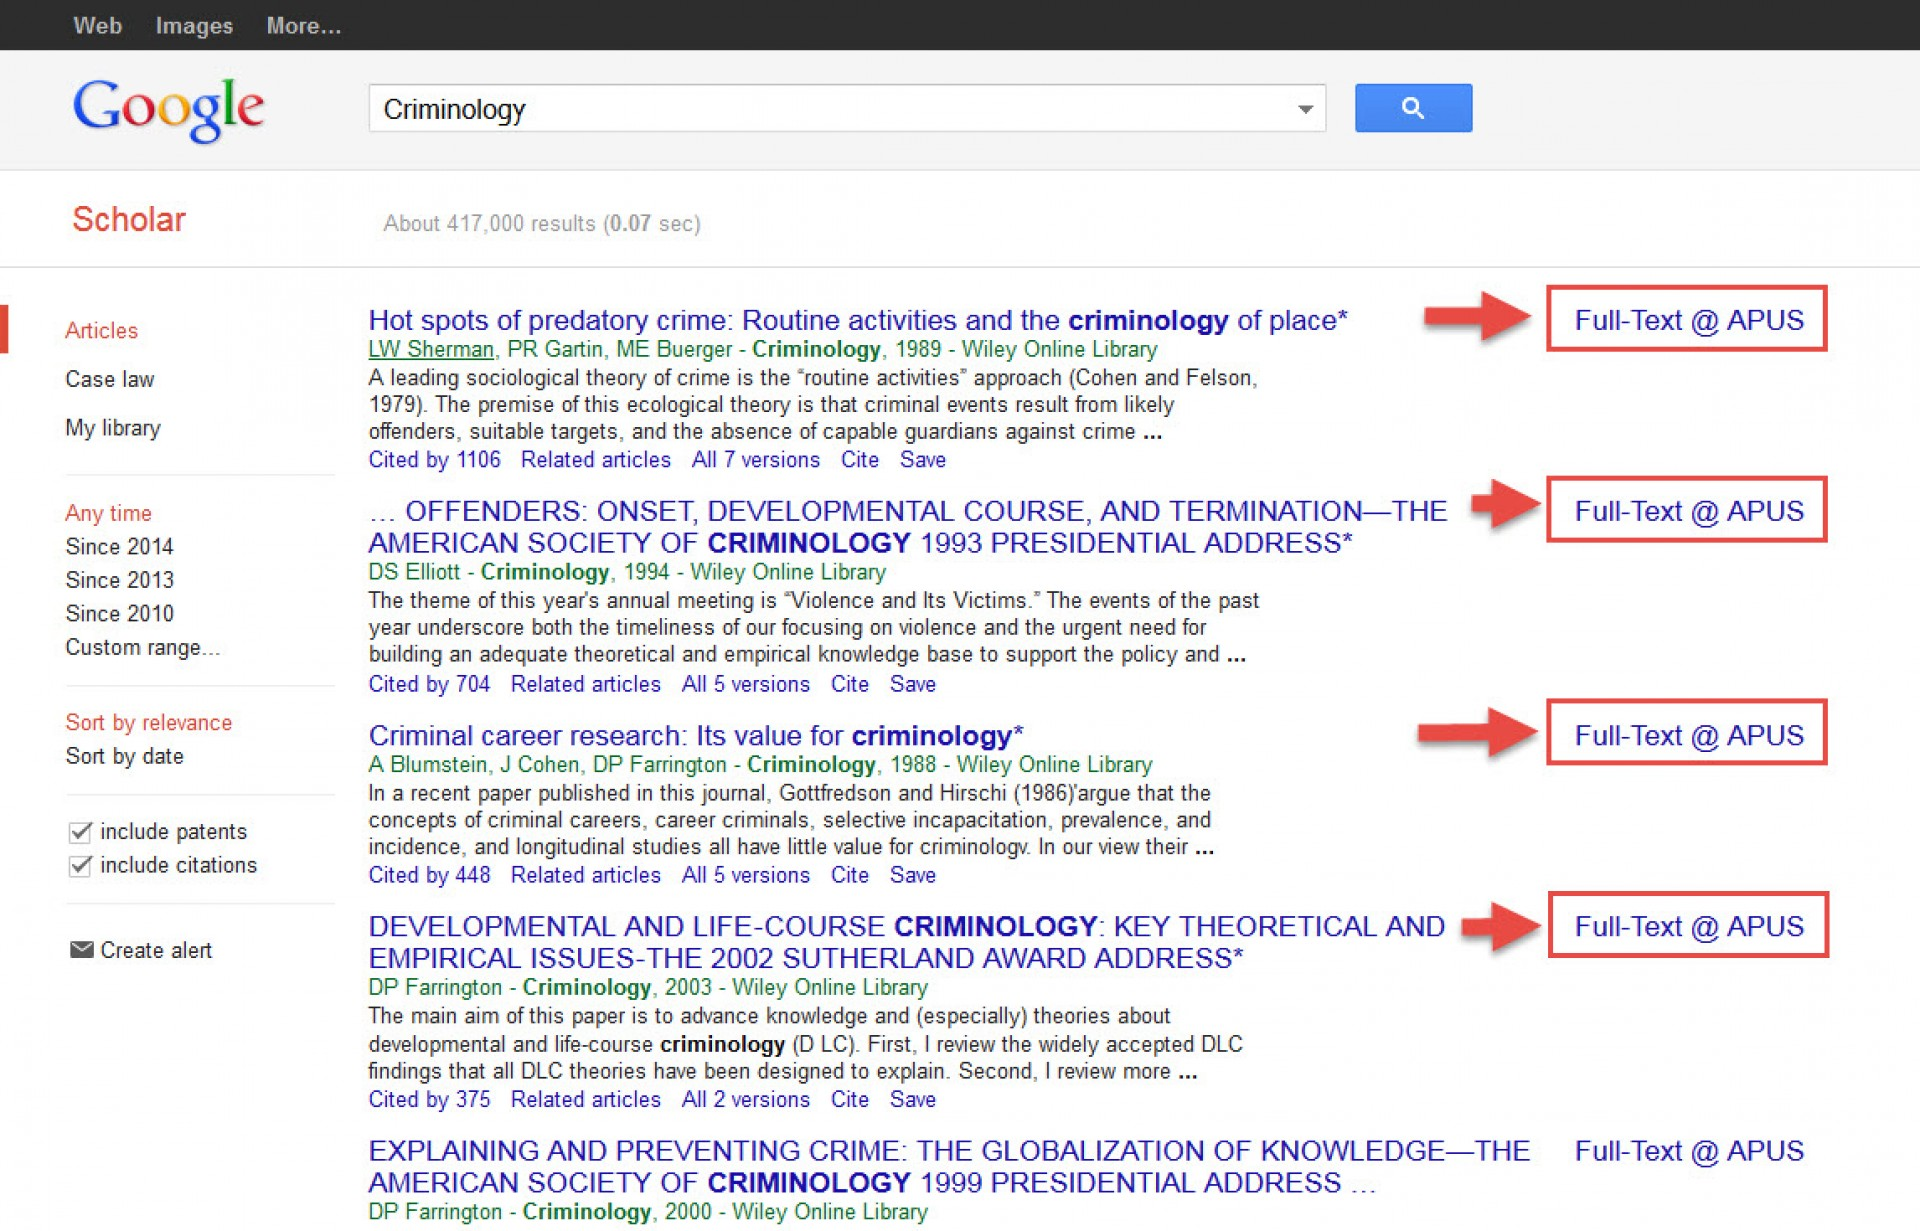 016 How To Publish Research Paper On Google Scholar Full Text Links Dreaded 1920